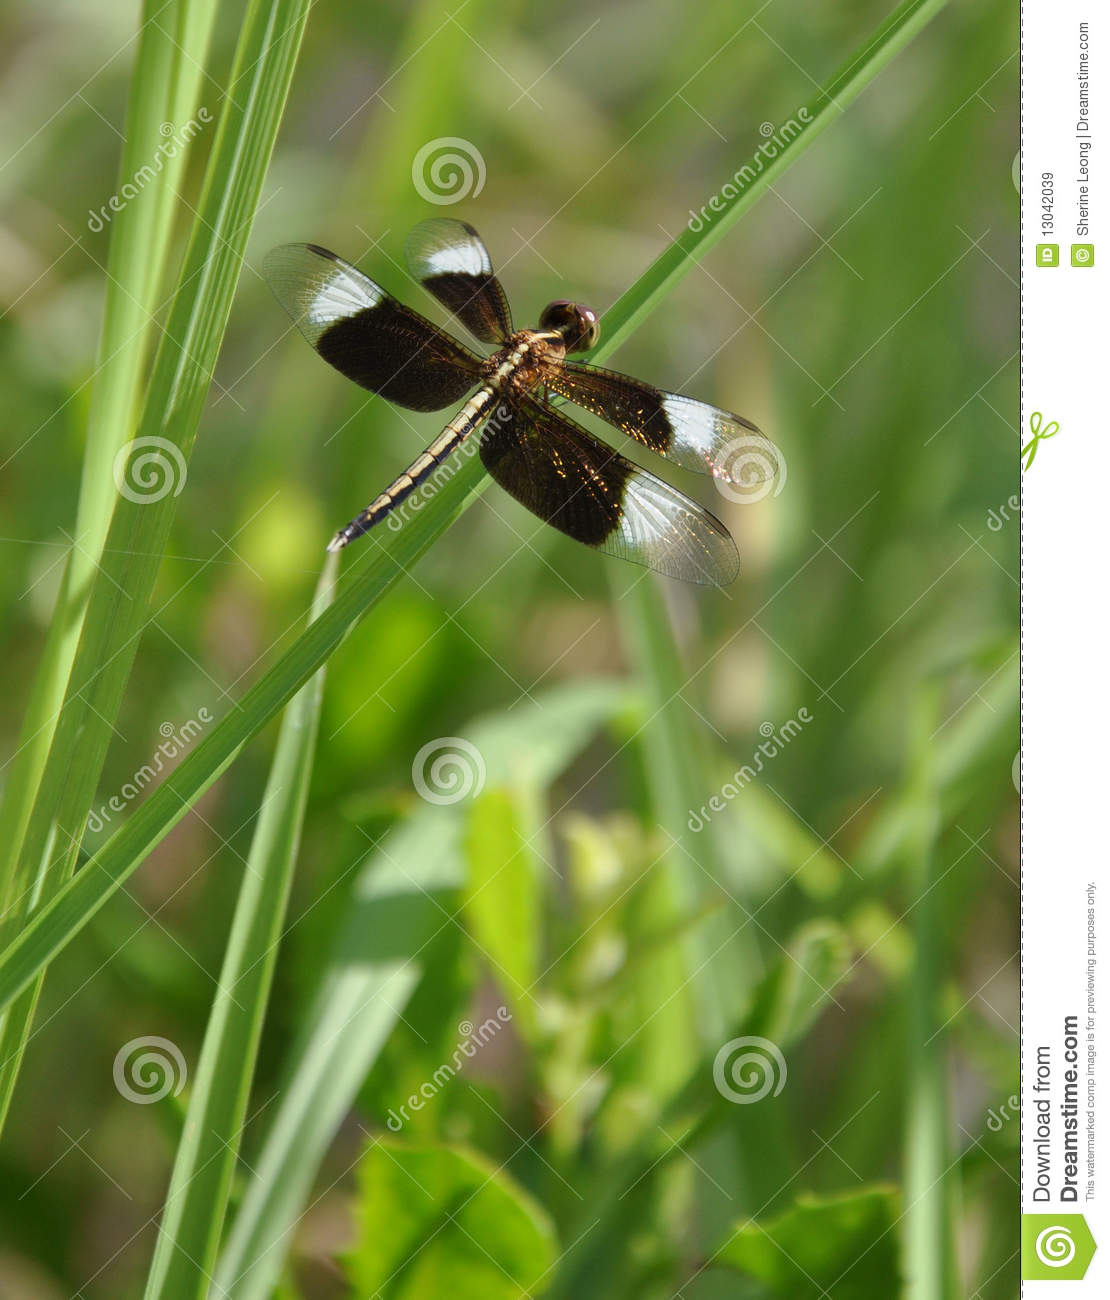 Black winged dragonfly - photo#25